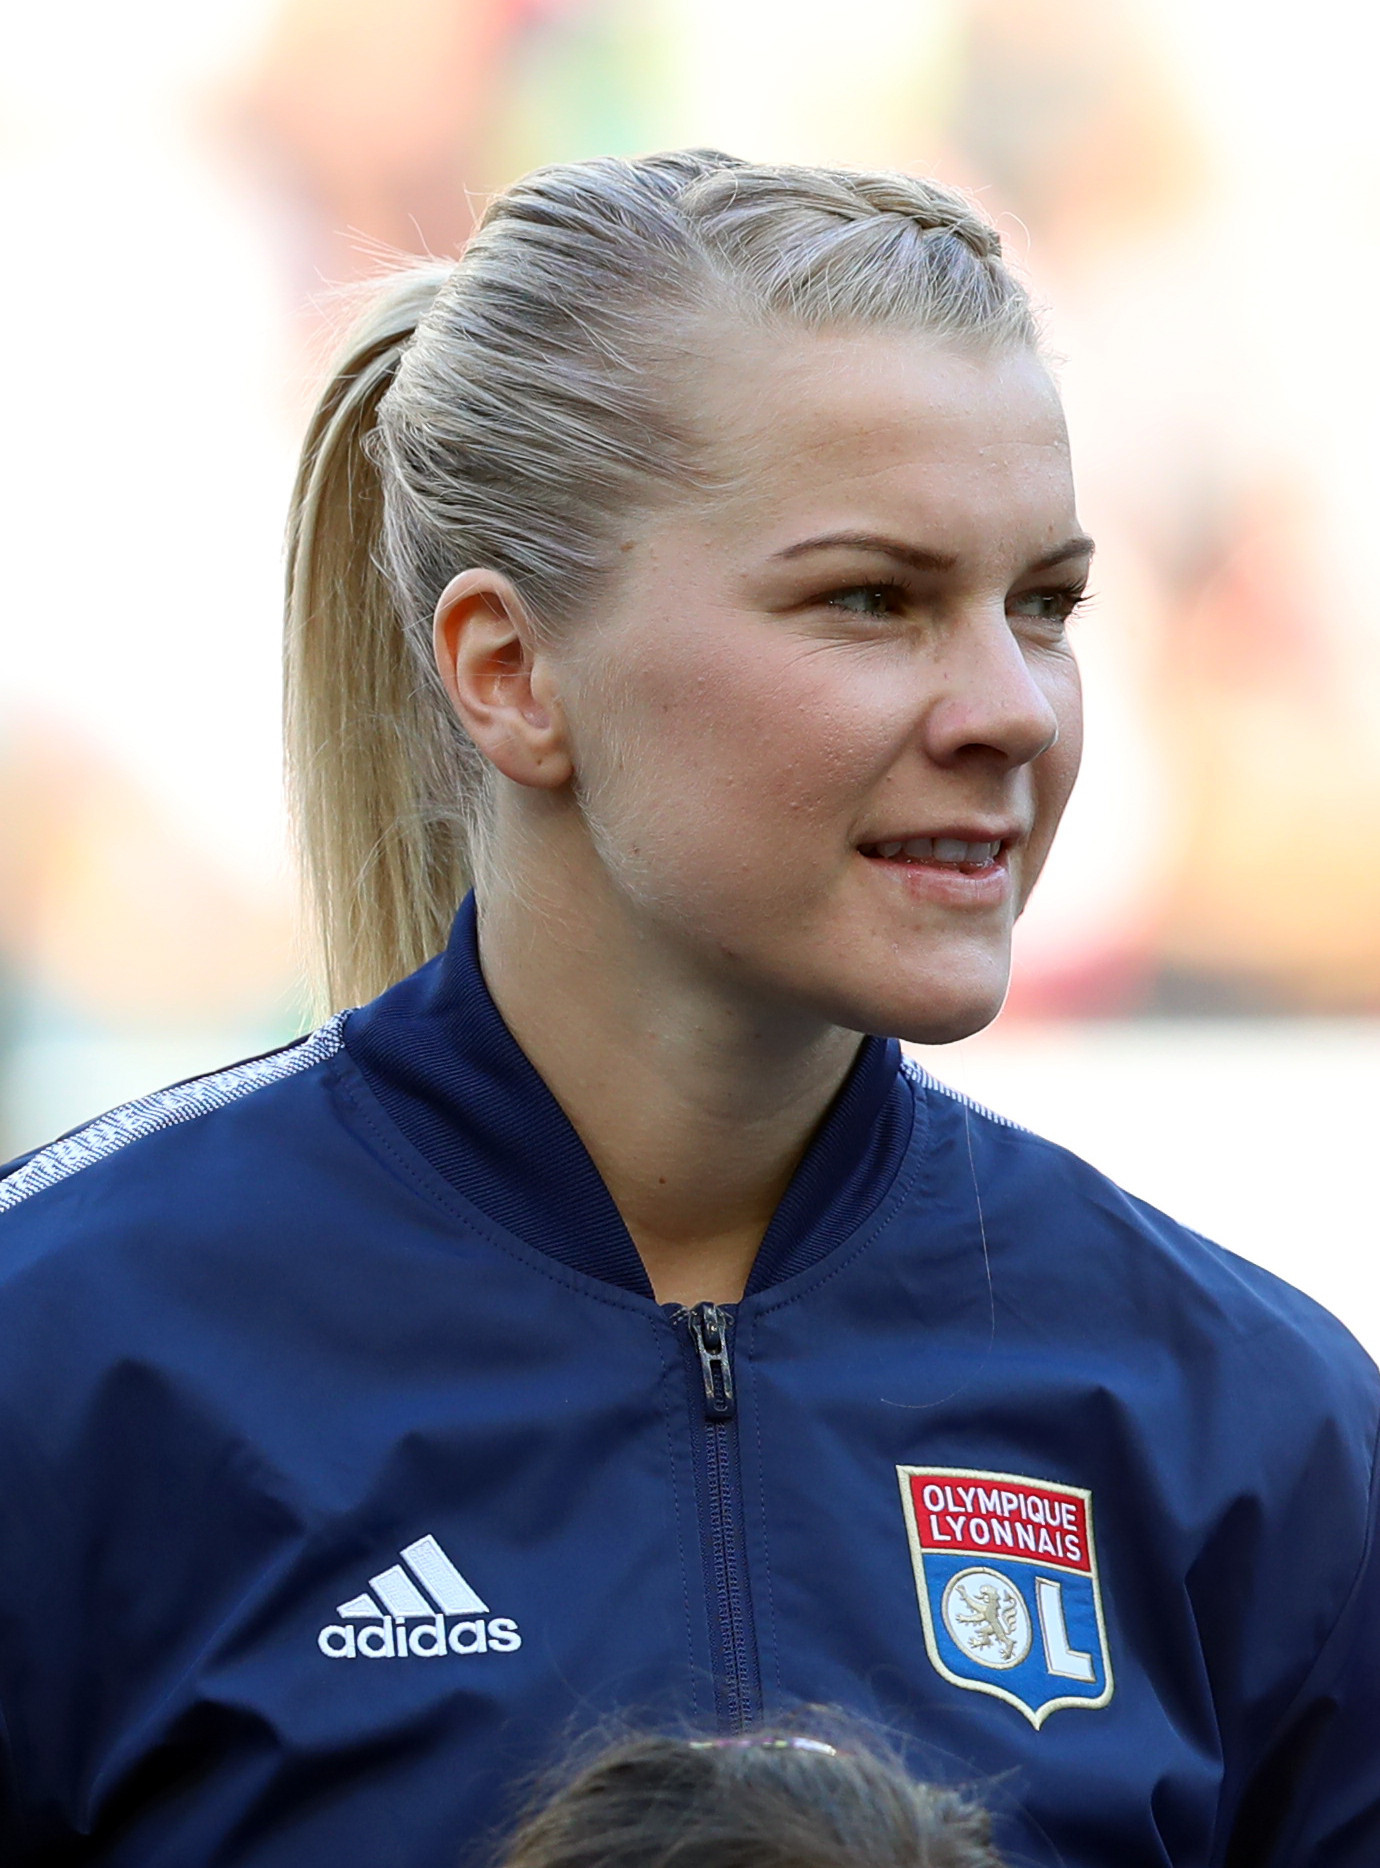 The absence from the FIFA Women's World Cup of Norway's Ada Hegerberg, who is in dispute with her home federation, points to a problem area in the women's game ©Getty Images